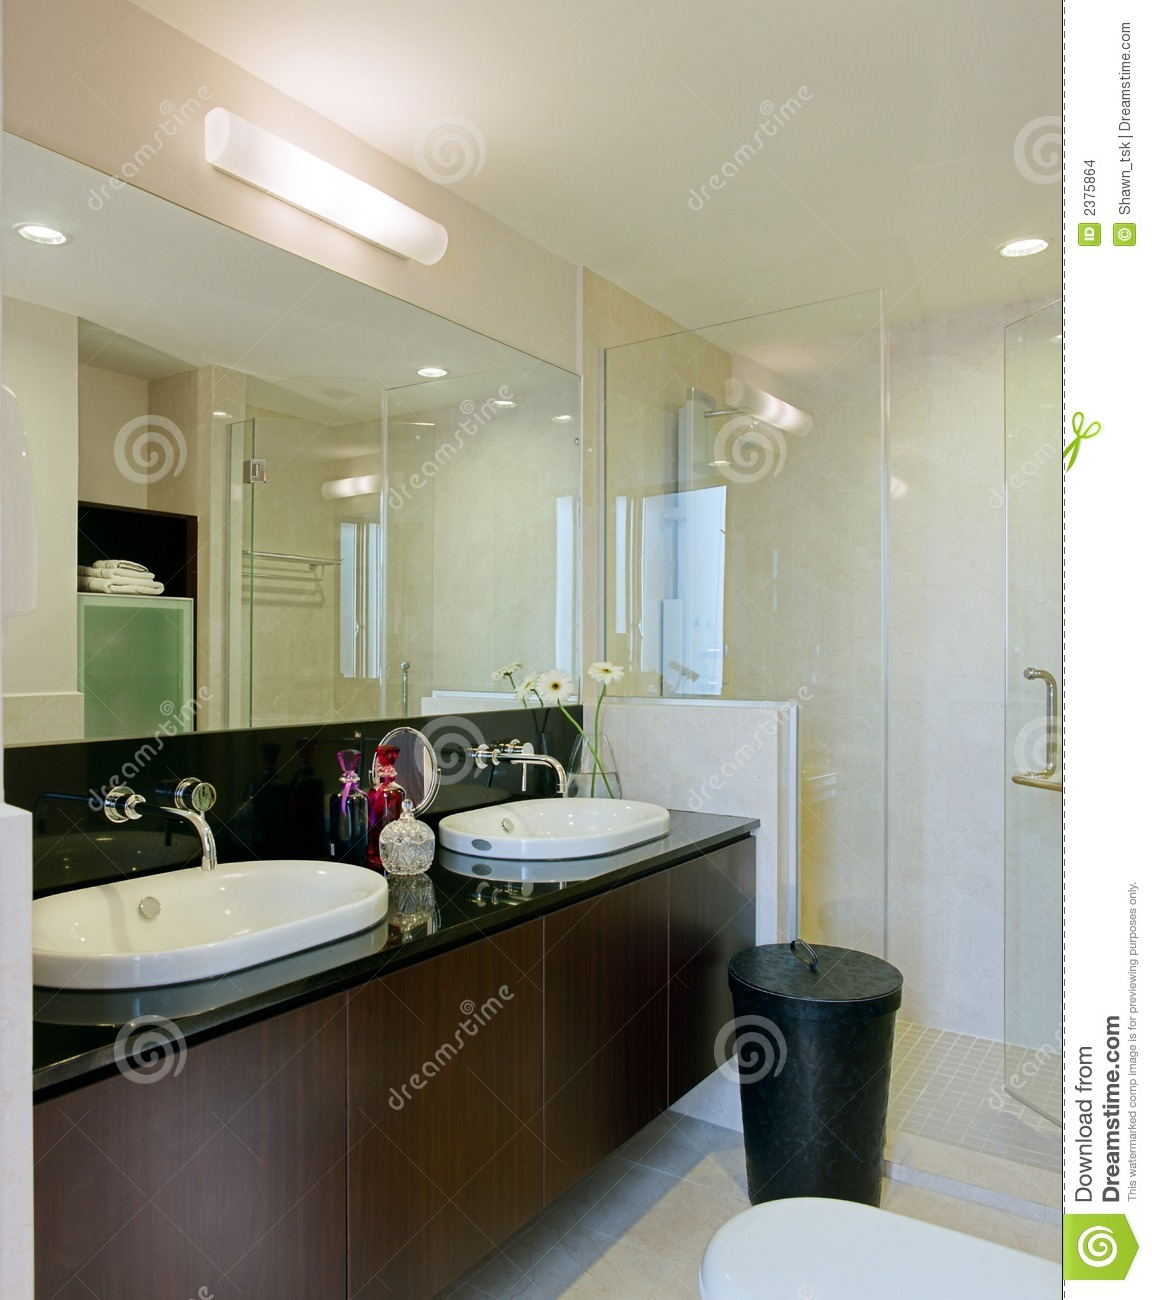 Interior design bathroom stock images image 2375864 for Bathroom interior images